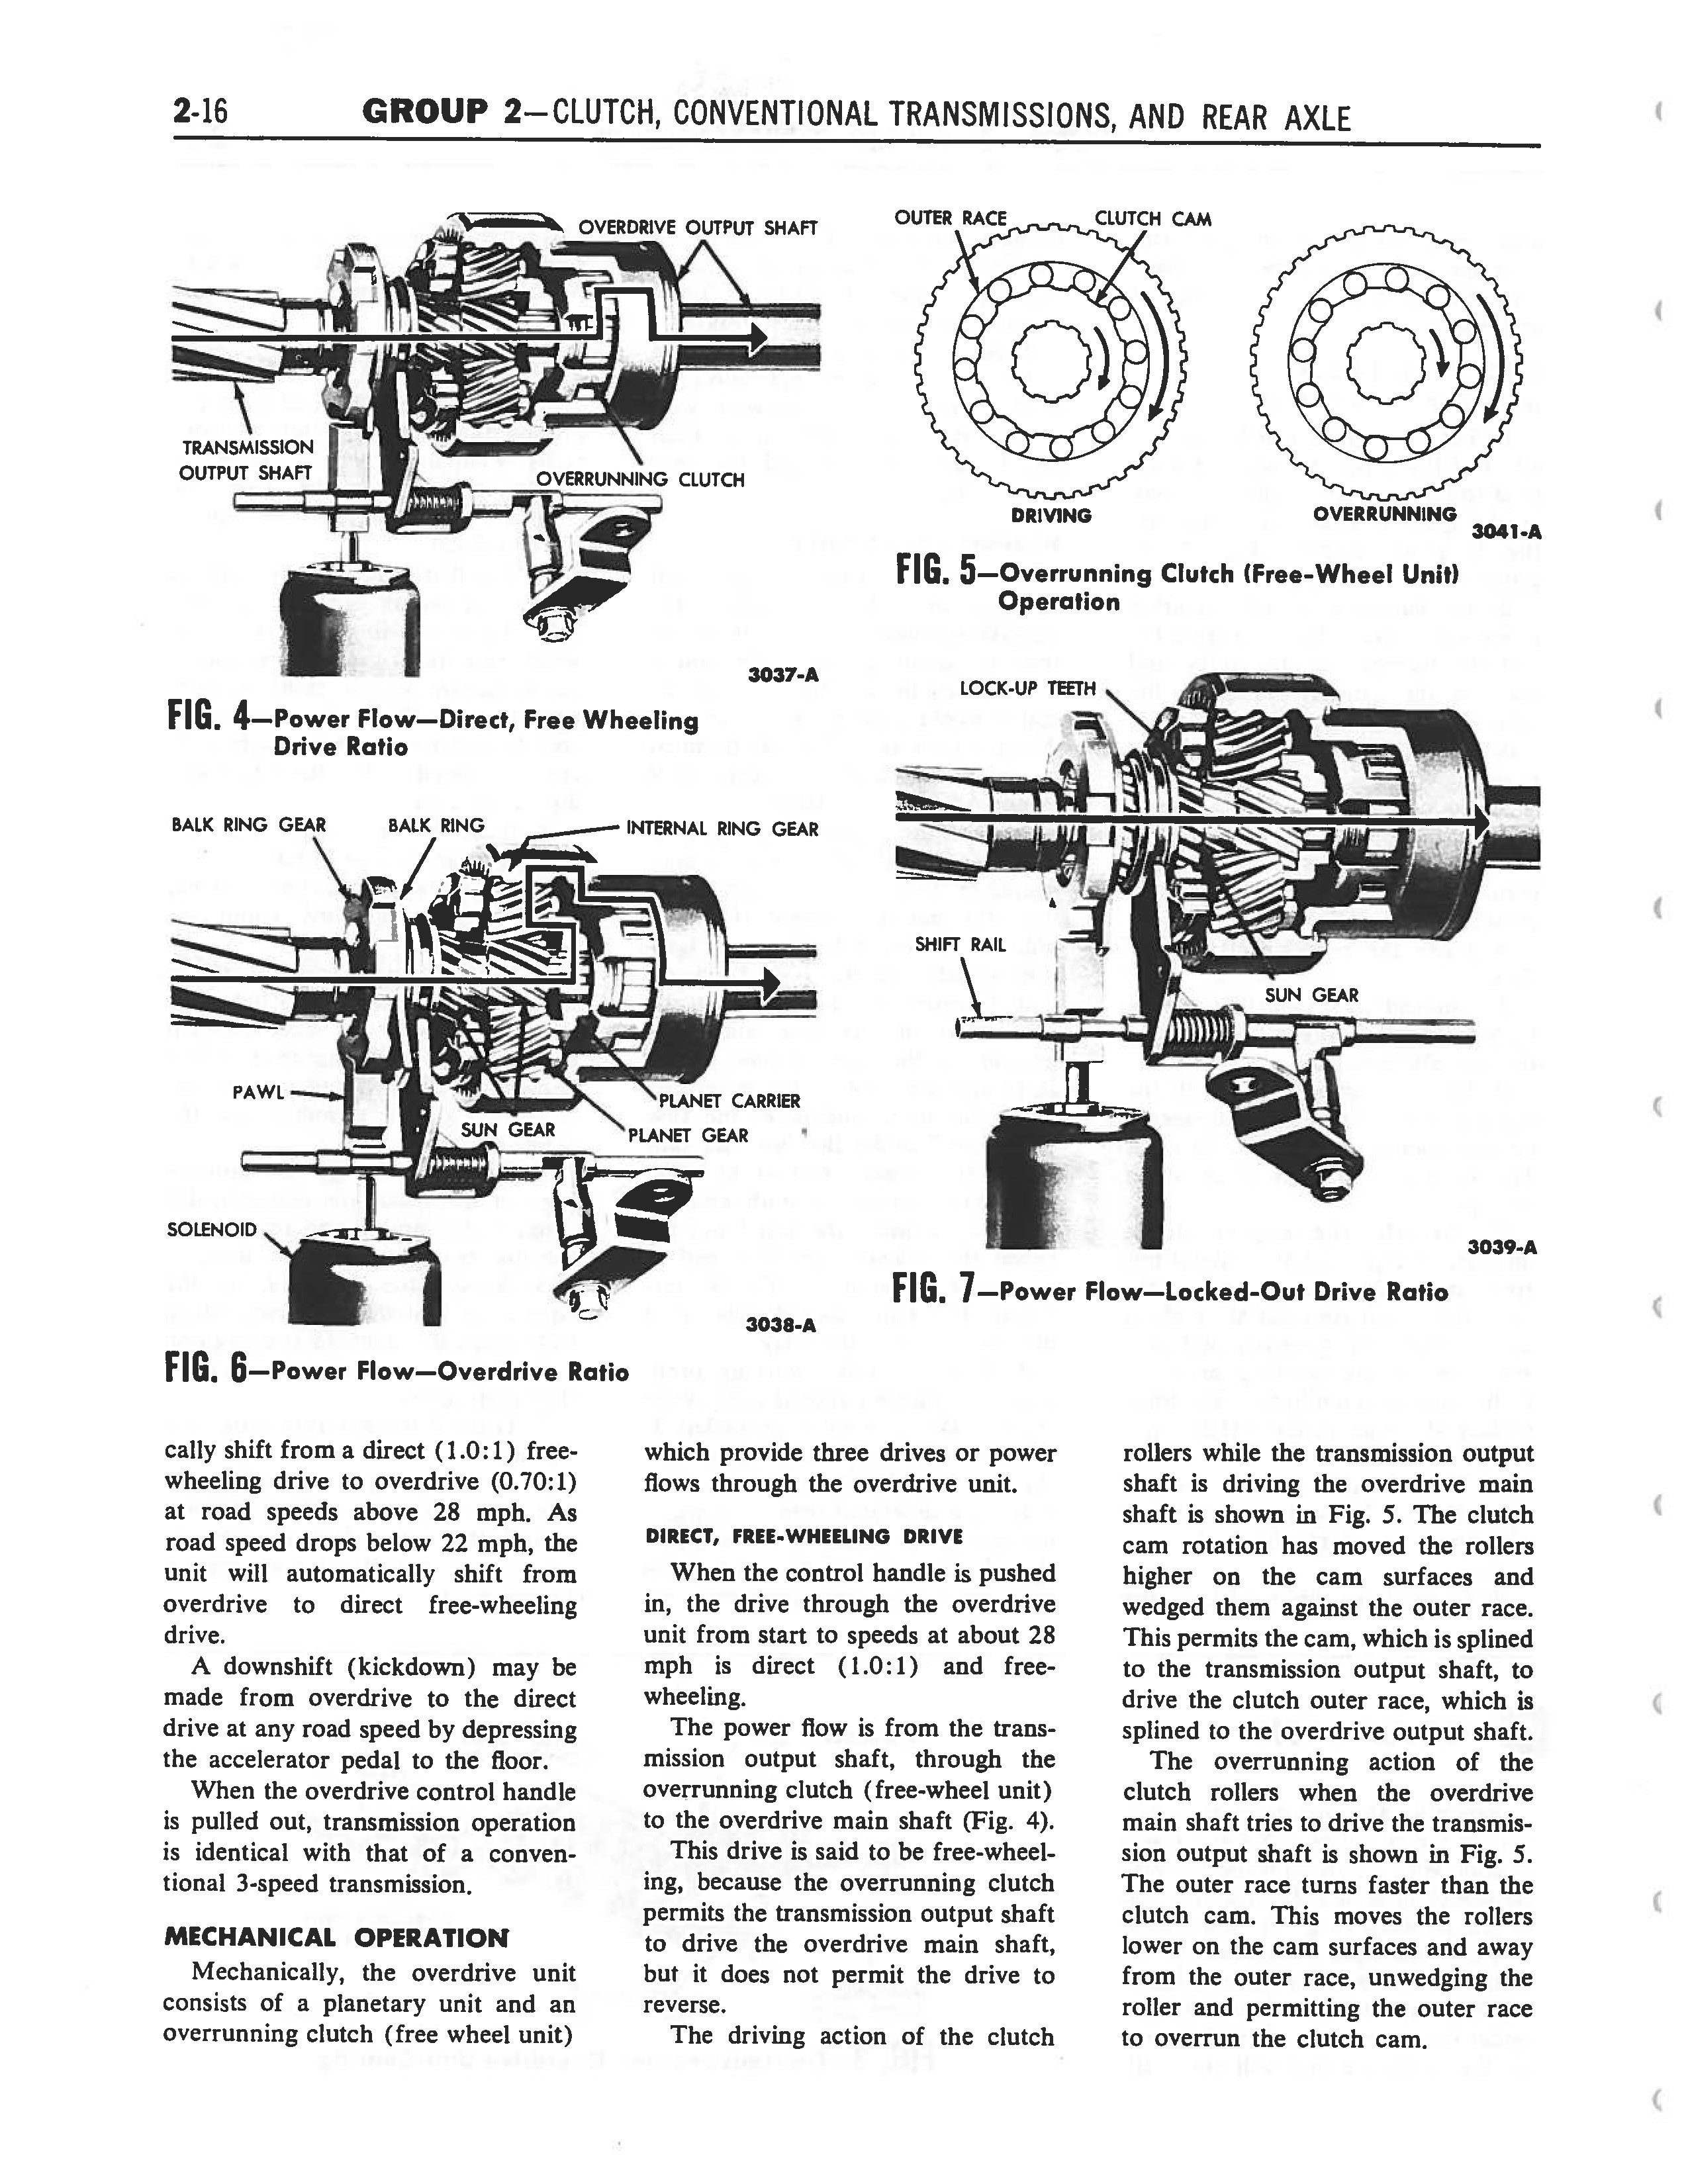 1958 Ford Thunderbird Shop Manual page 102 of 360